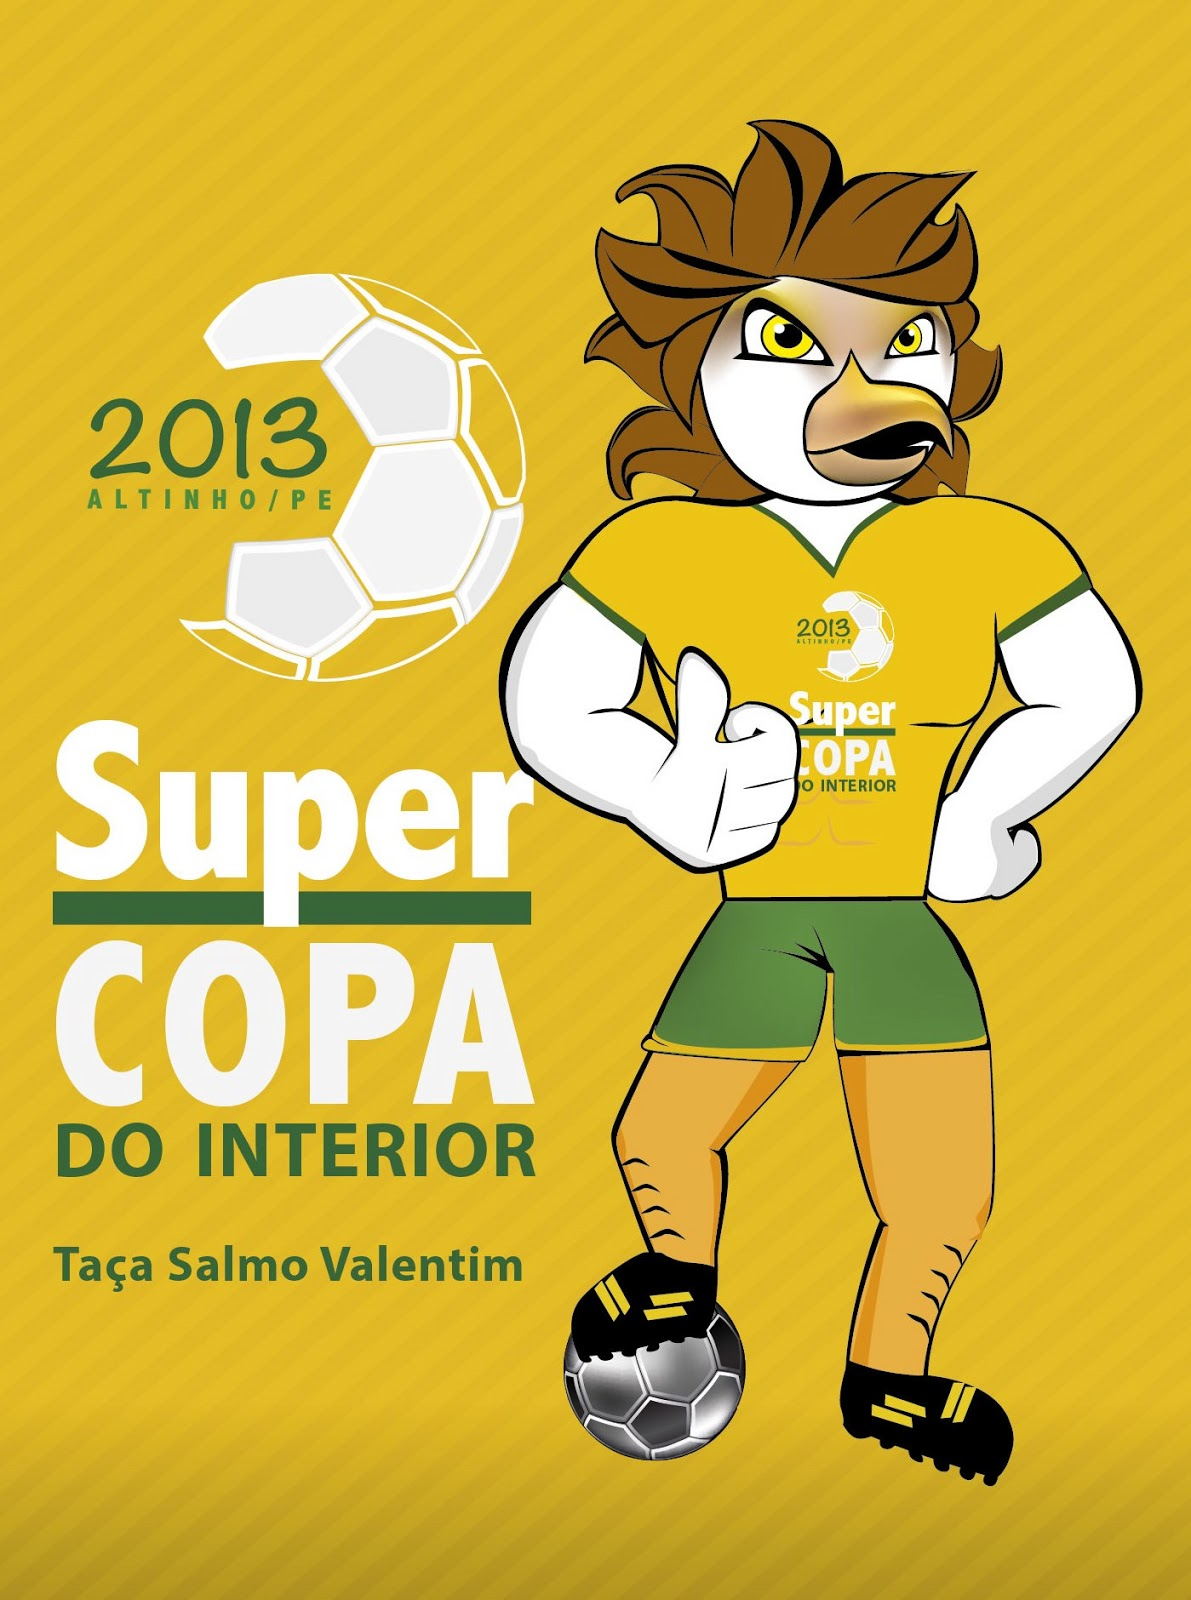 Super Copa do Interior 2013